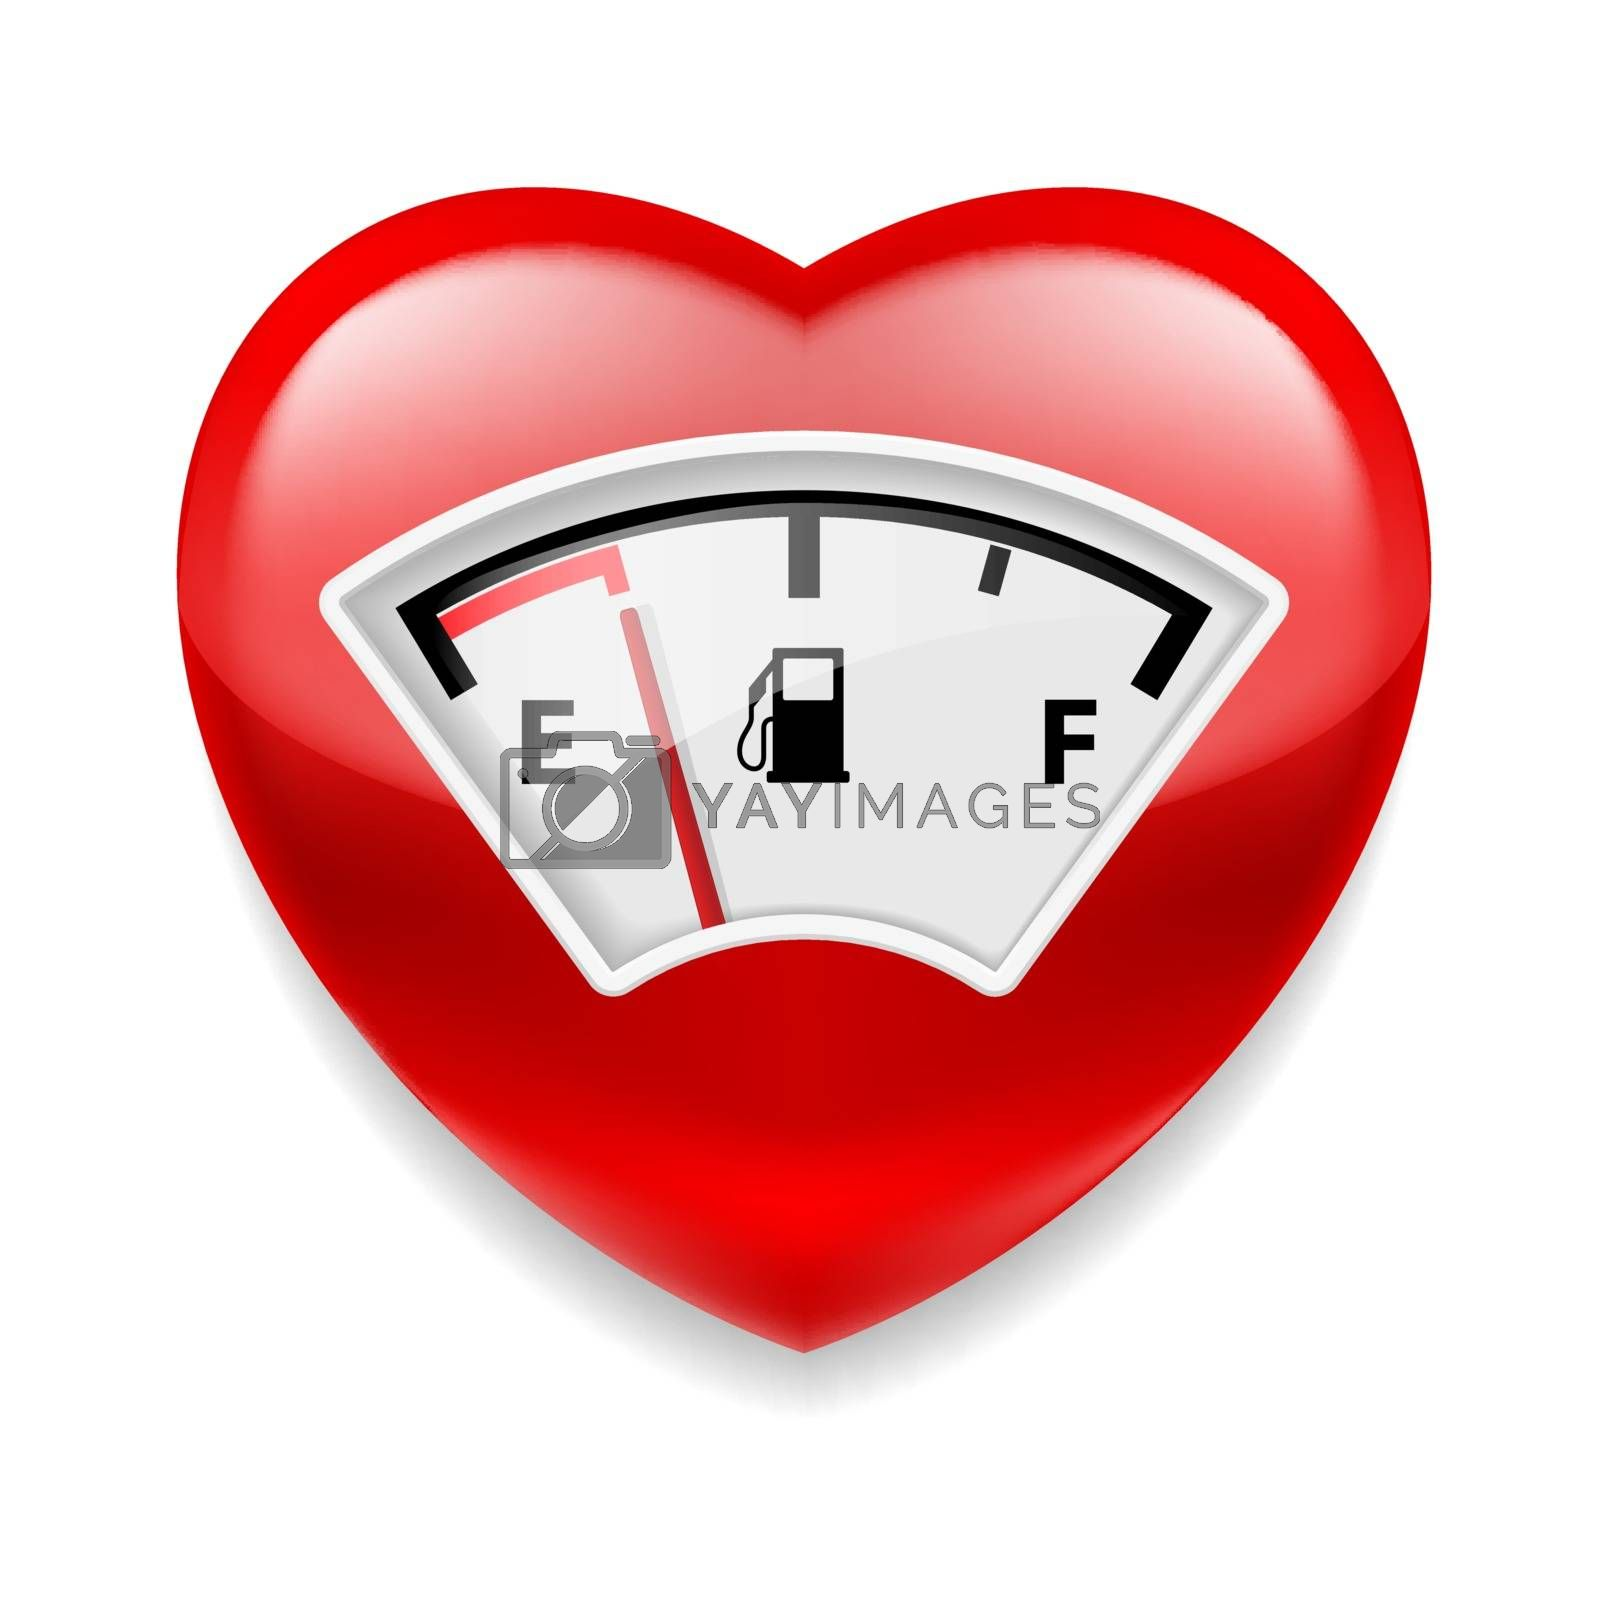 Royalty free image of Heart with fuel indicator by dvarg